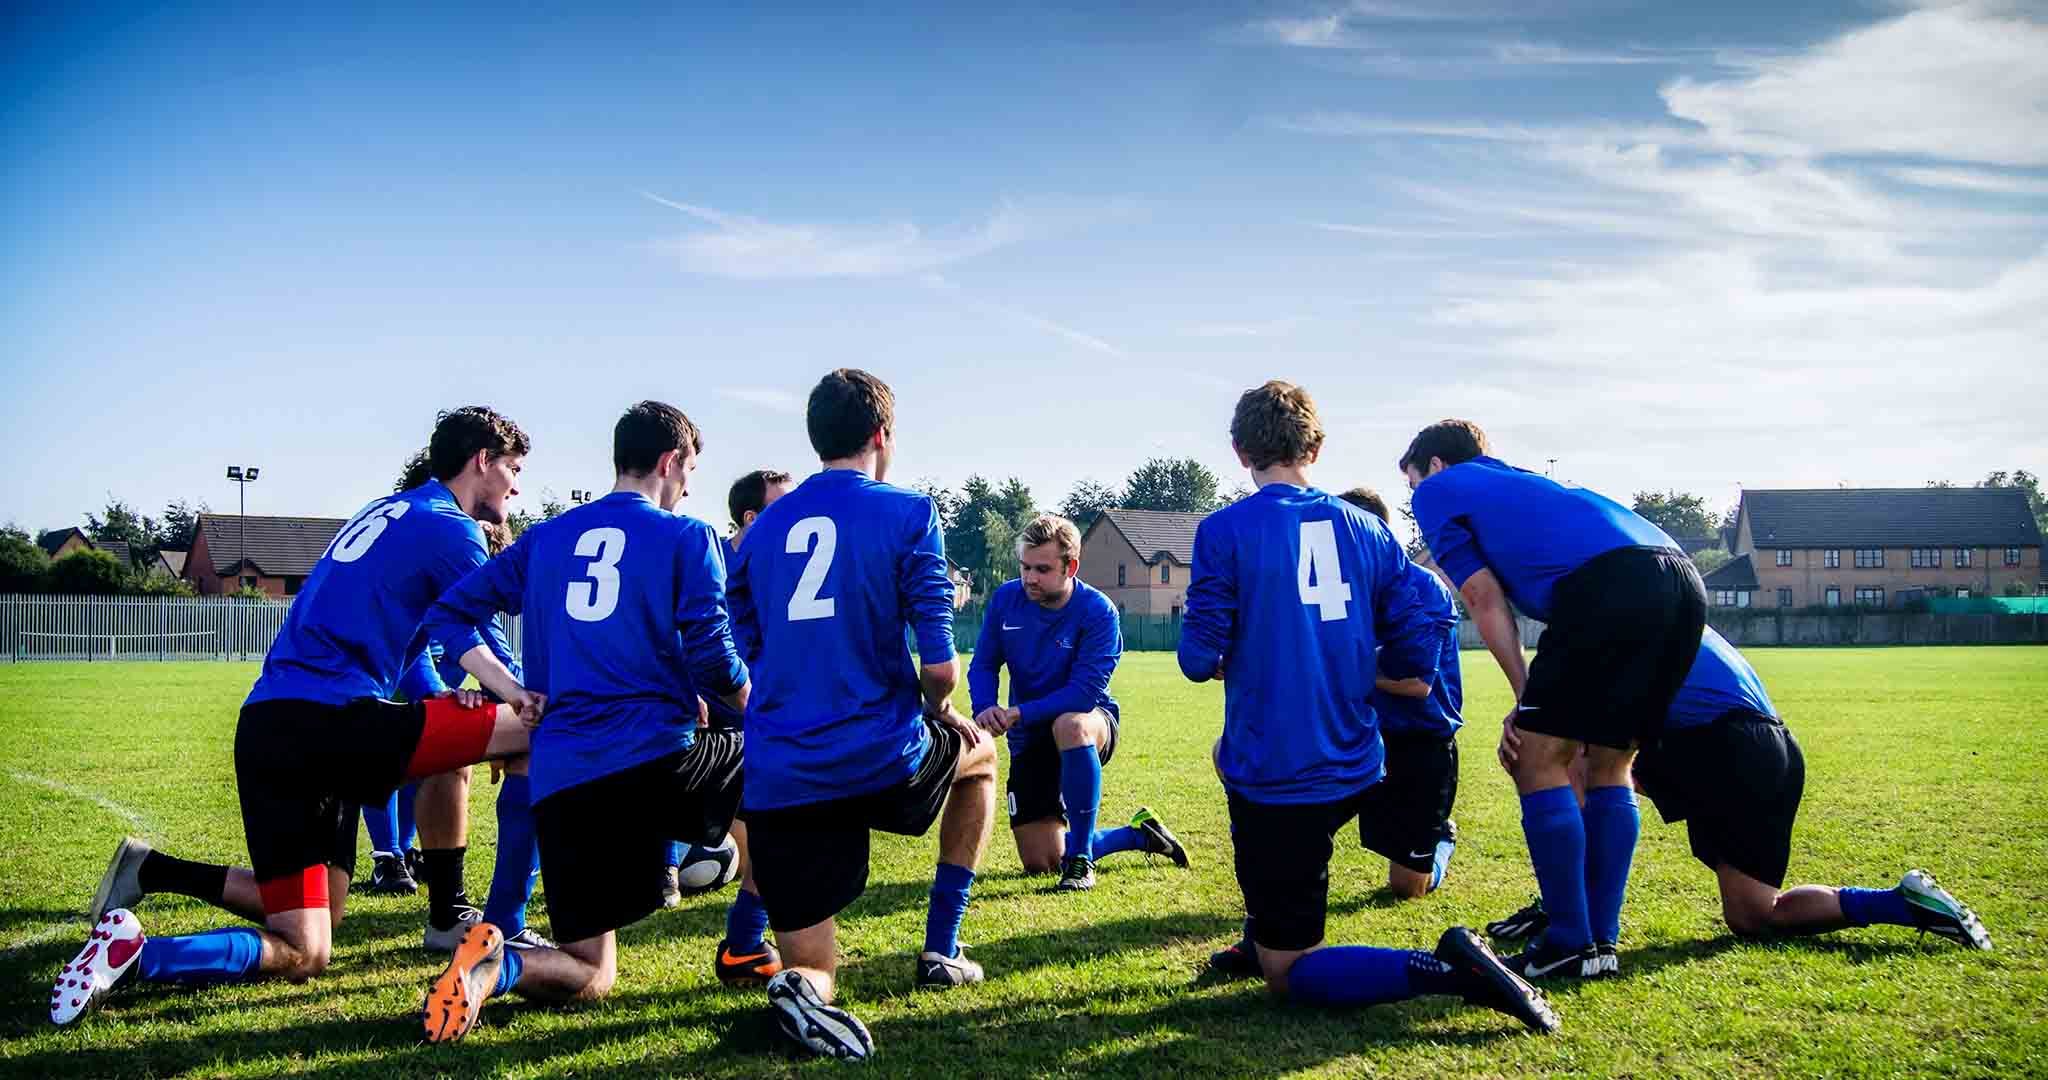 activity athletes blue team stock photography